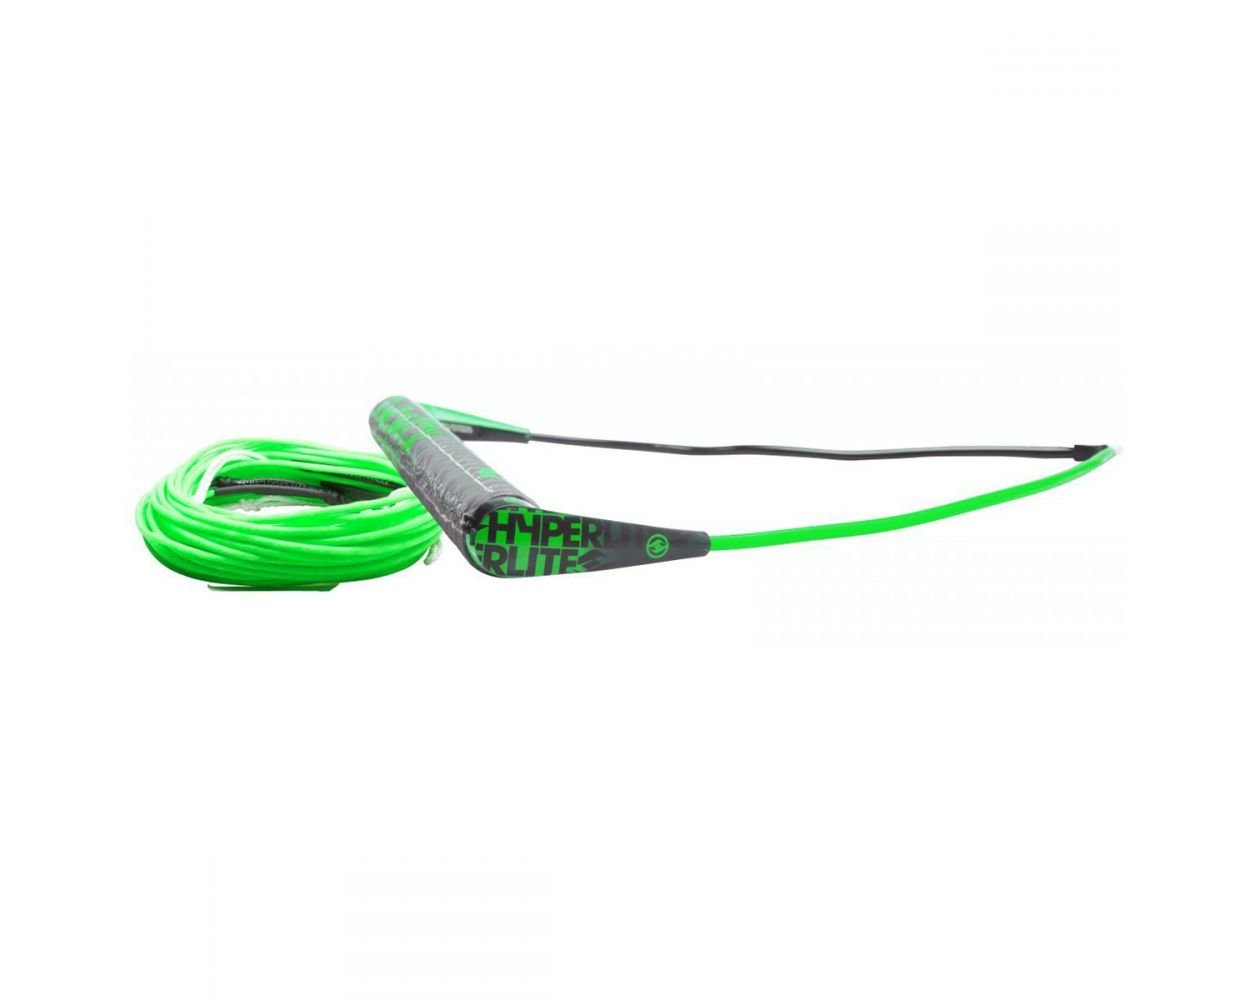 HL SG w/70' X-Line Green Rope & 15 Handle